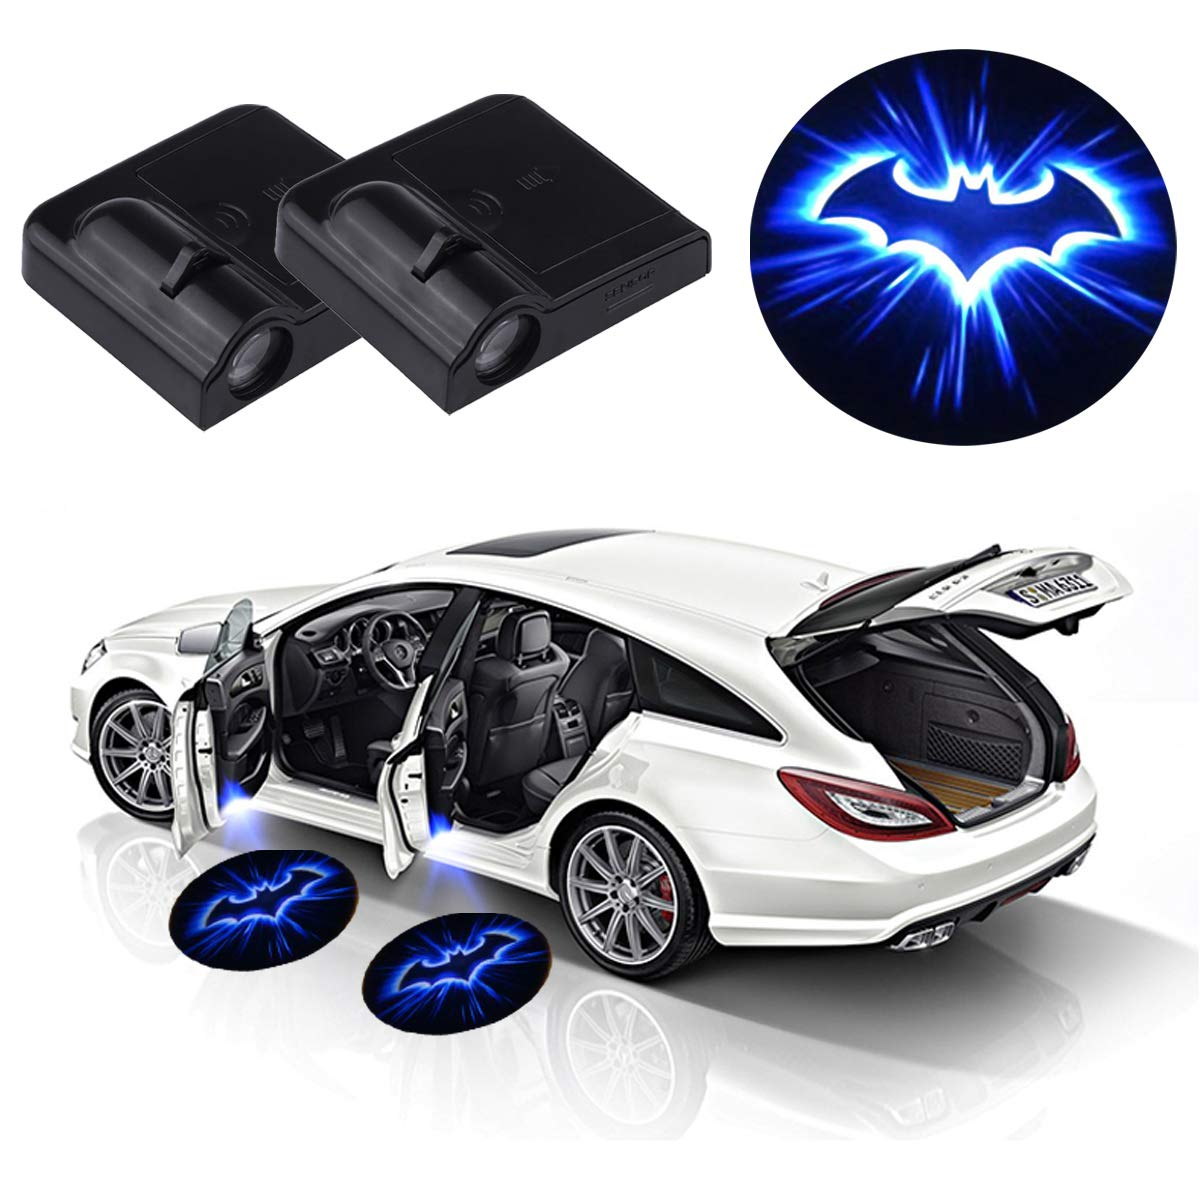 2 Pcs Universal Wireless Car Door Led Lights Projector for Ford Mustang,LED Car Courtesy Welcome Light with Magnet Sensor Auto On//Off Punisher